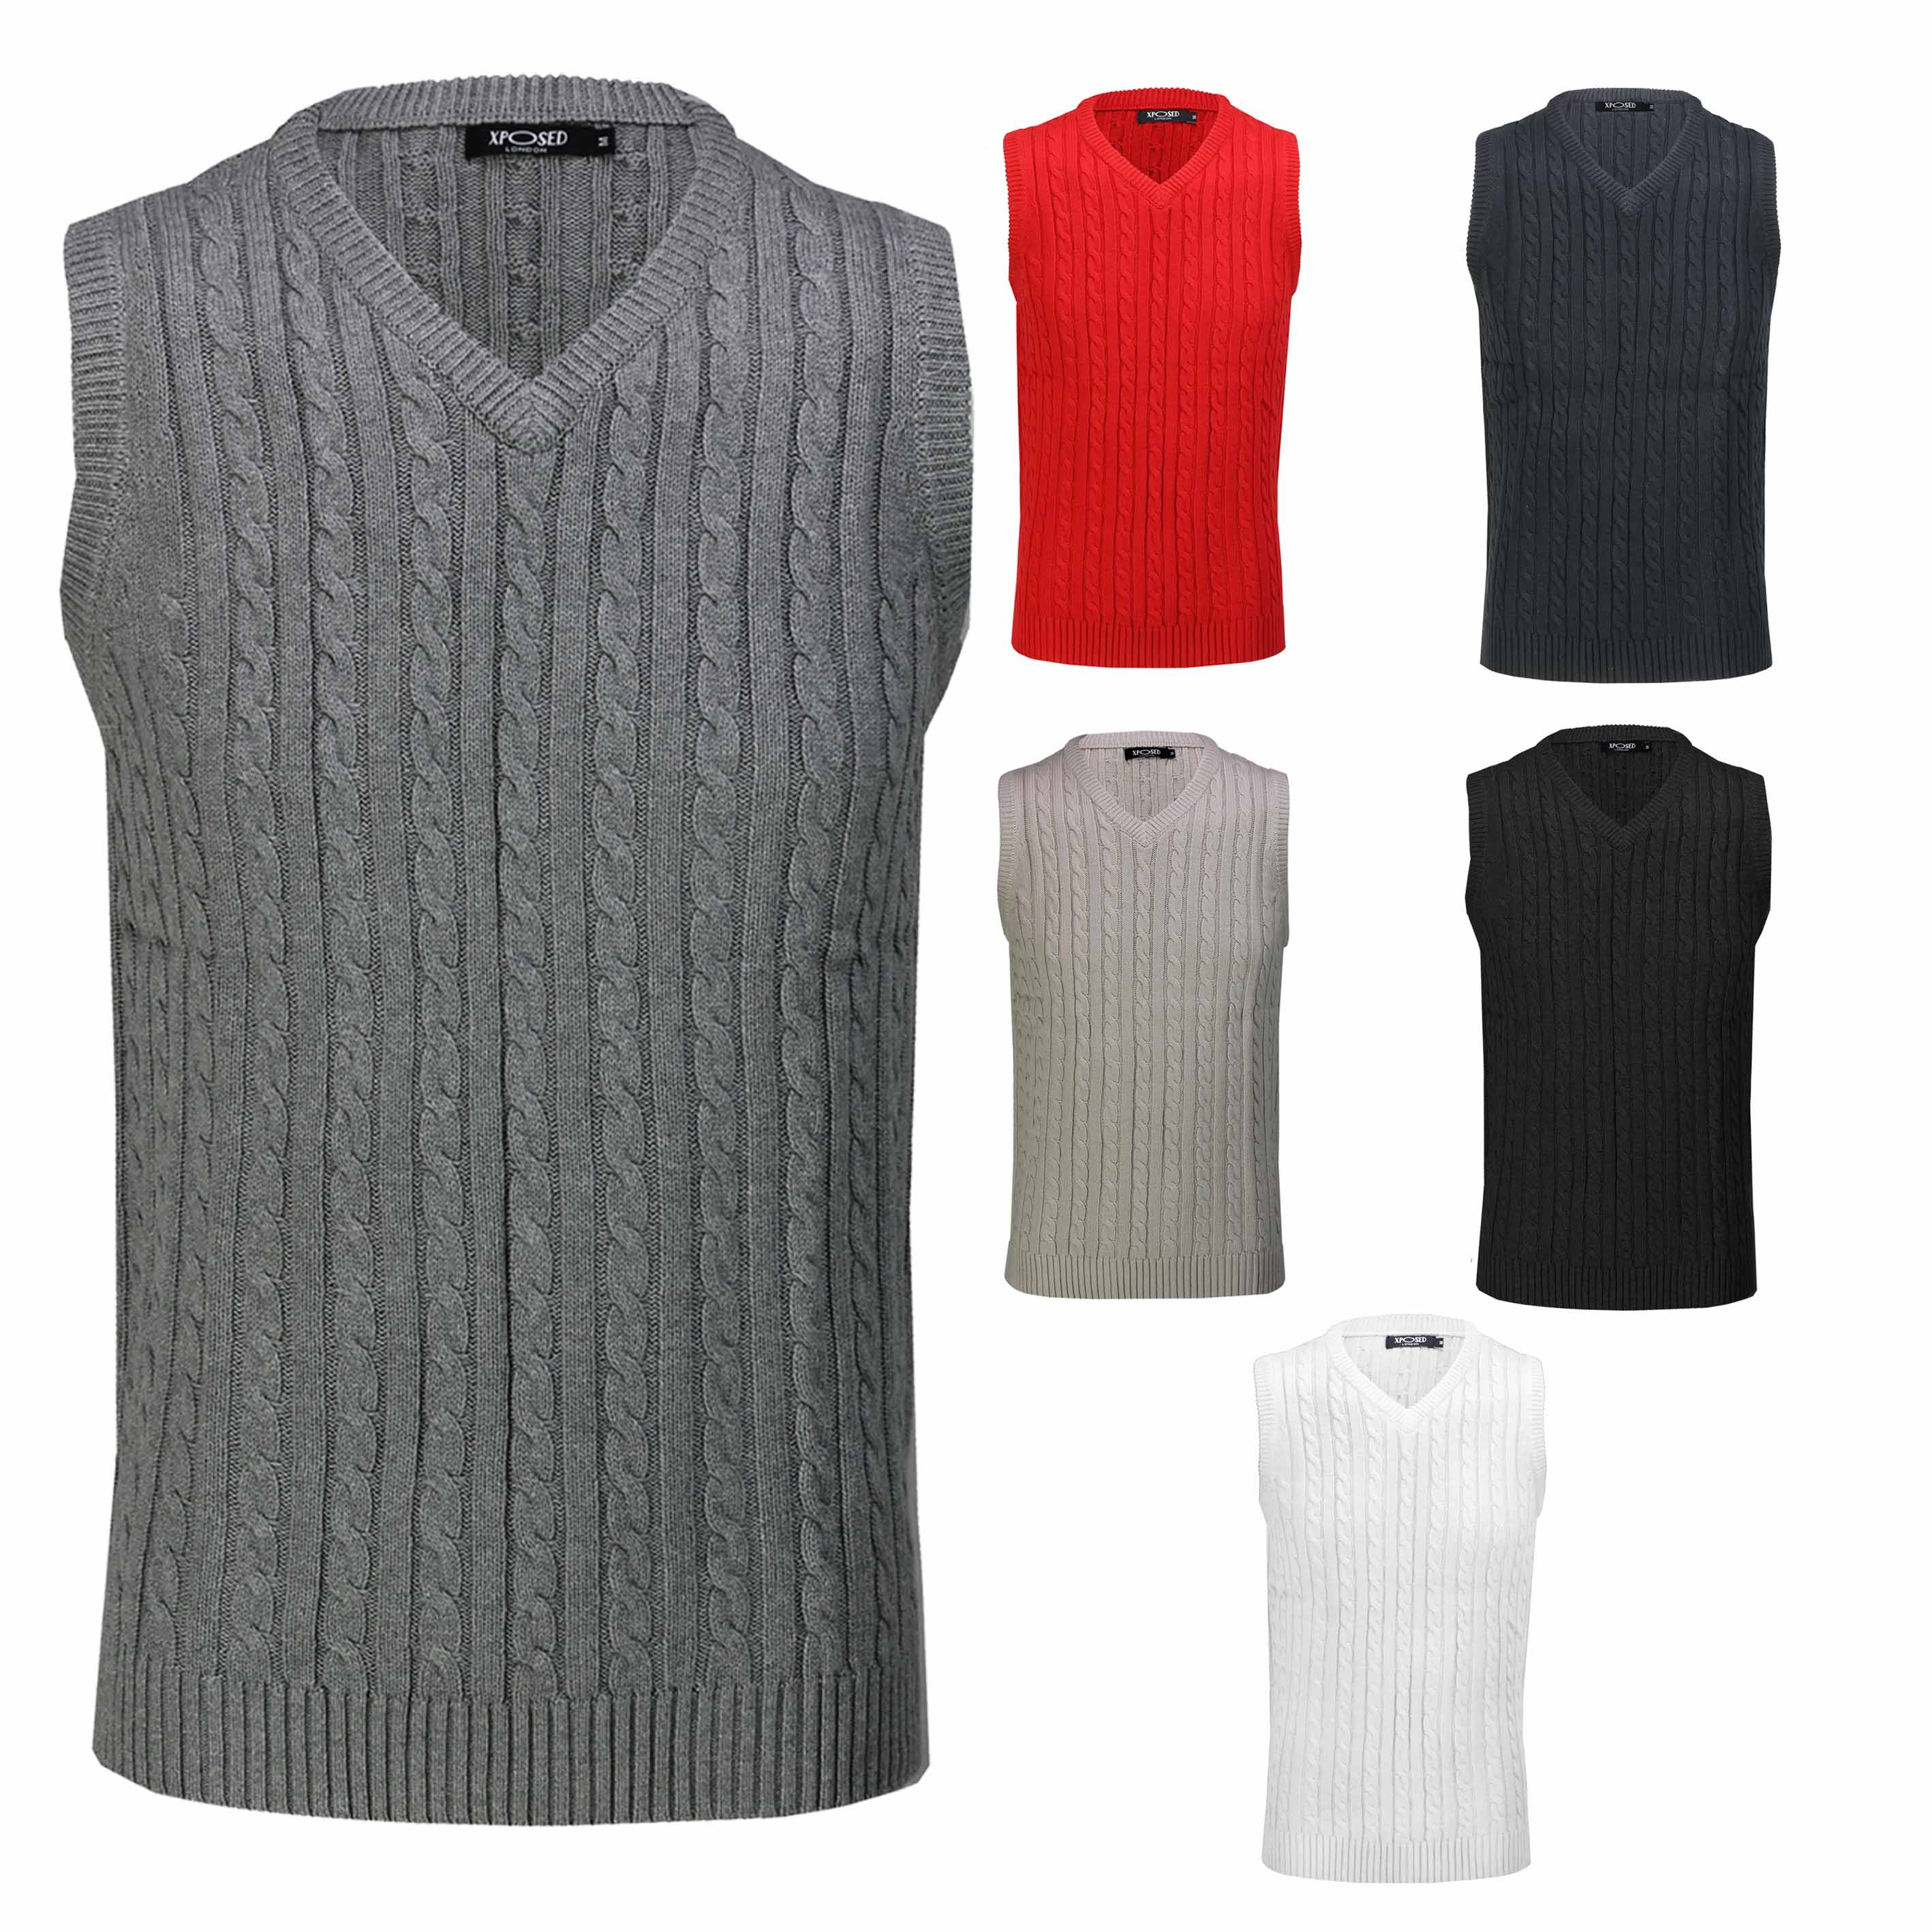 Details about Mens Classic Cable Knitted Sleeveless V Neck Jumper Smart Casual Sweater Vest